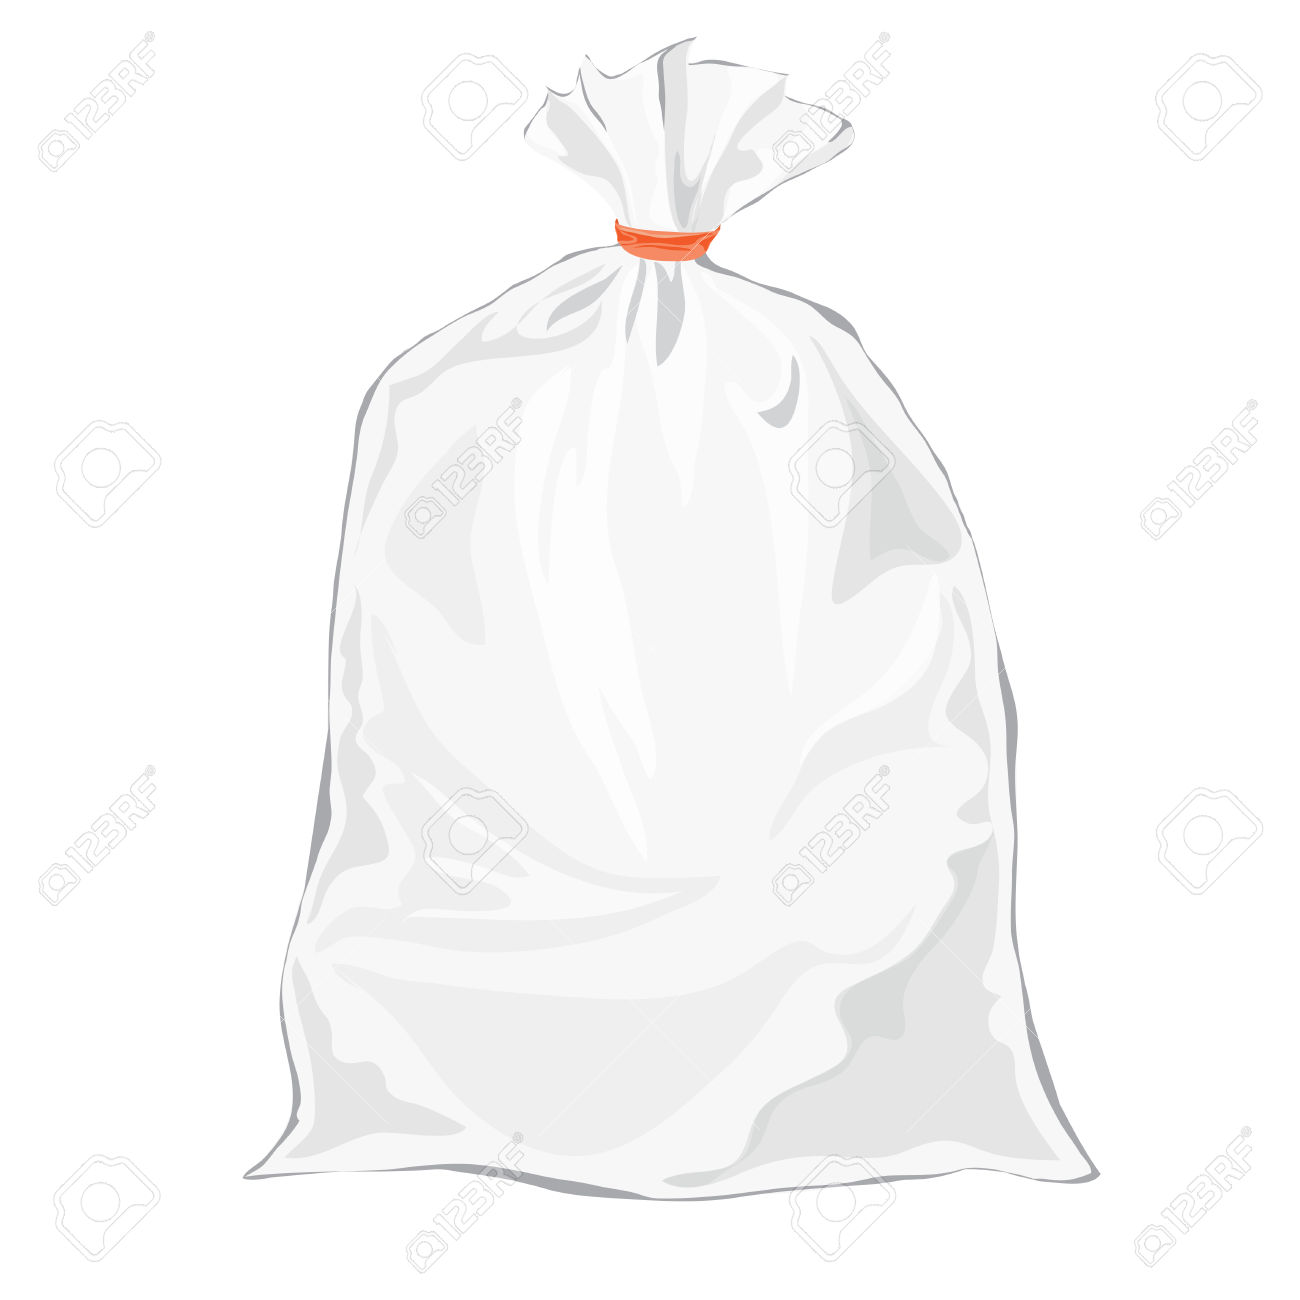 Plastic Packaging Clipart